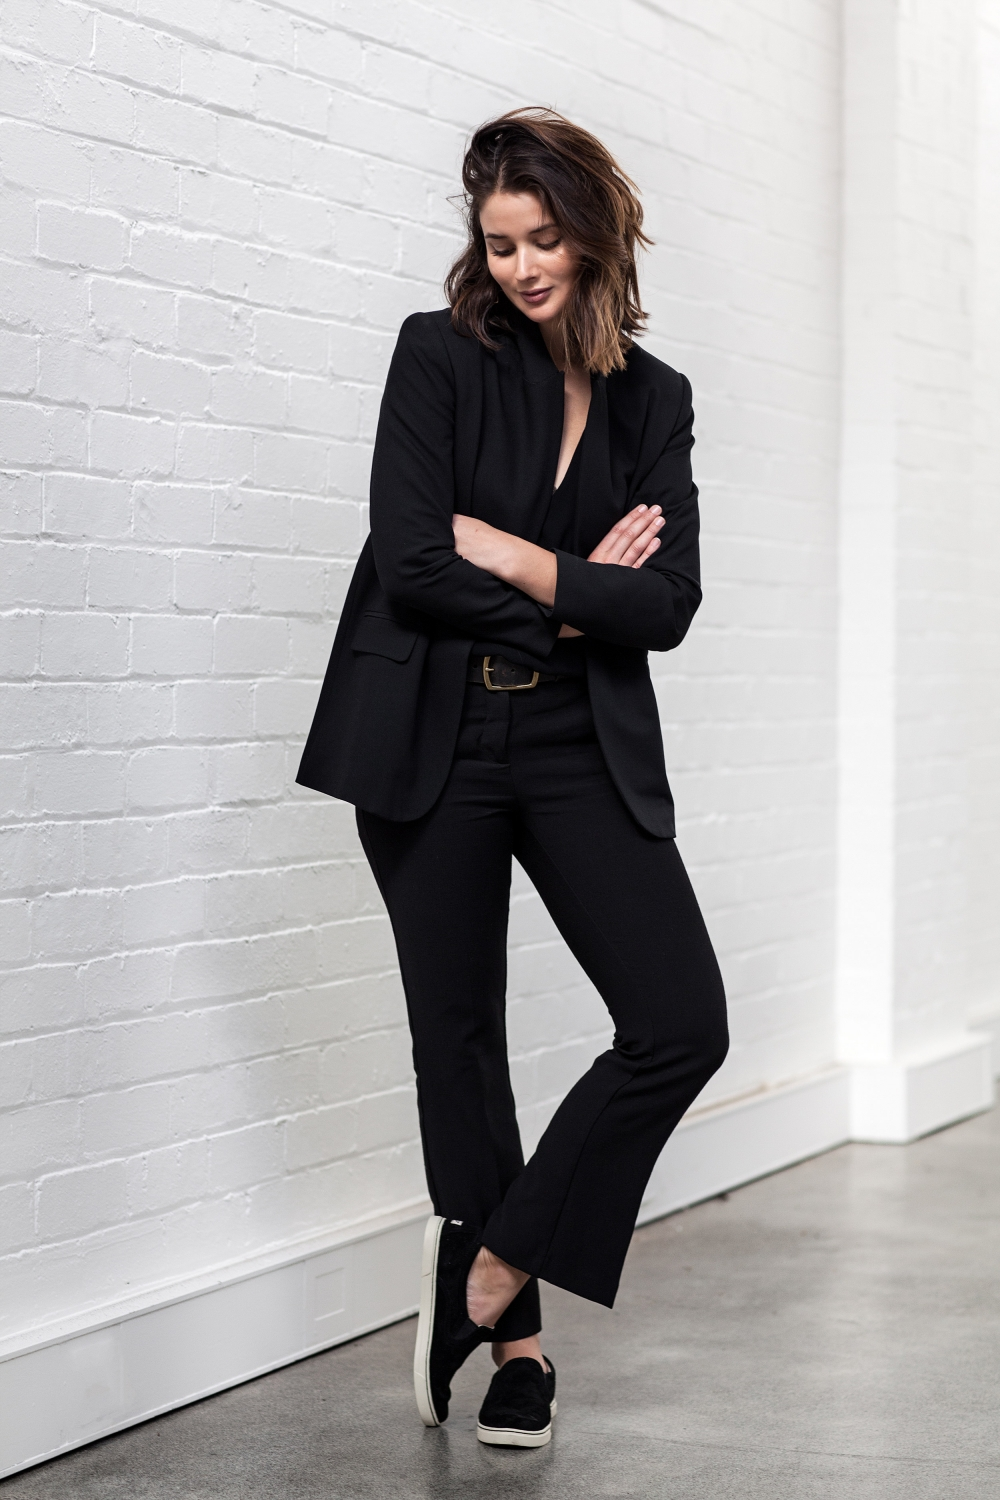 Black suiting | style | outfit | Harper and Harley